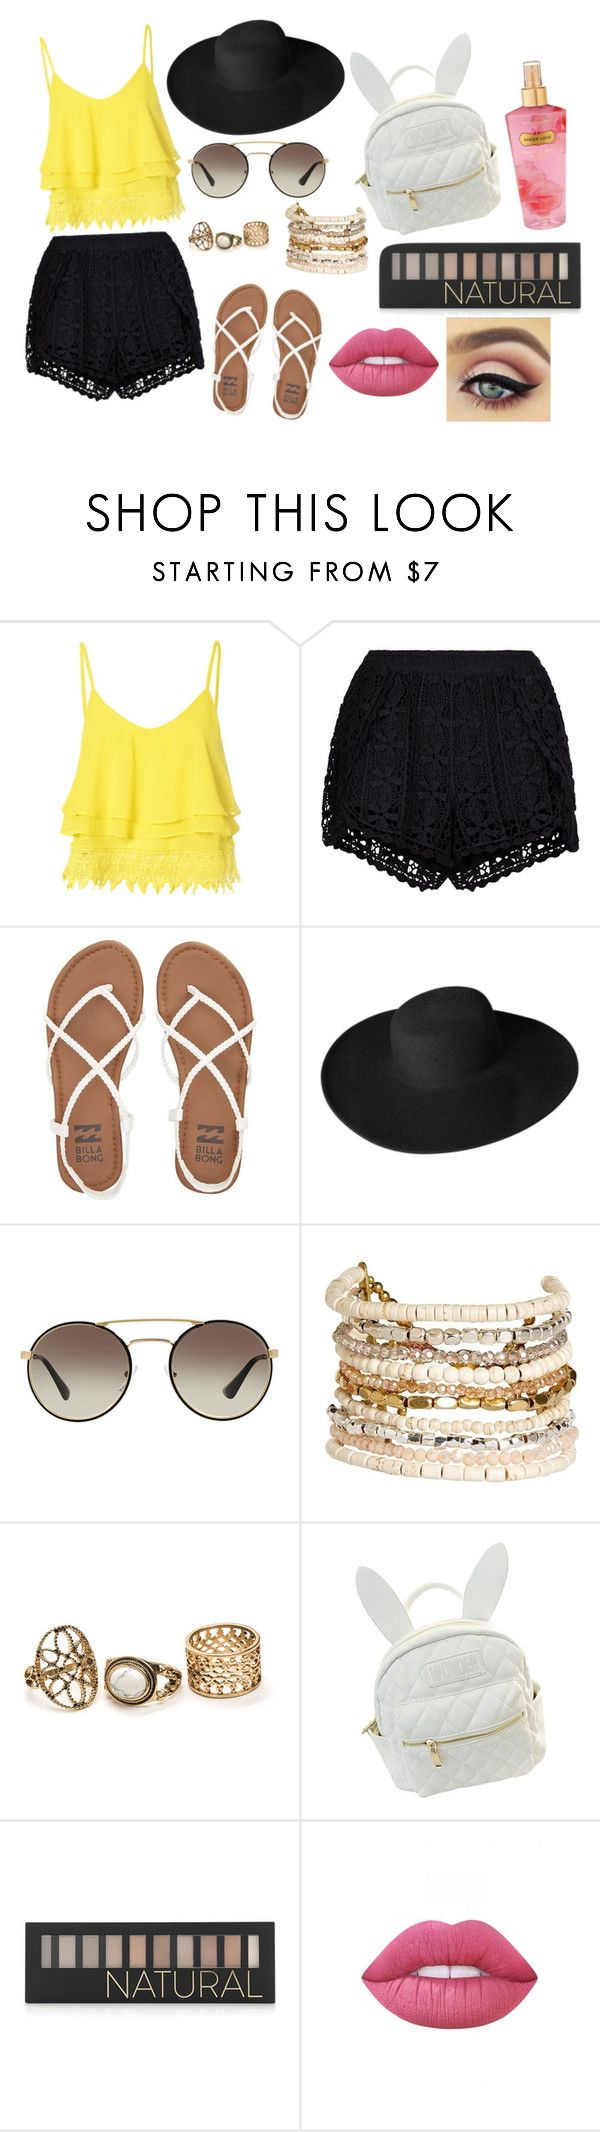 """""""Playa por la Noche"""" by clarisaguerra-243 ❤ liked on Polyvore featuring Glamorous, New Look, Billabong, Dorfman Pacific, Prada, Panacea, cutekawaii, Forever 21, Lime Crime and Victoria's Secret"""